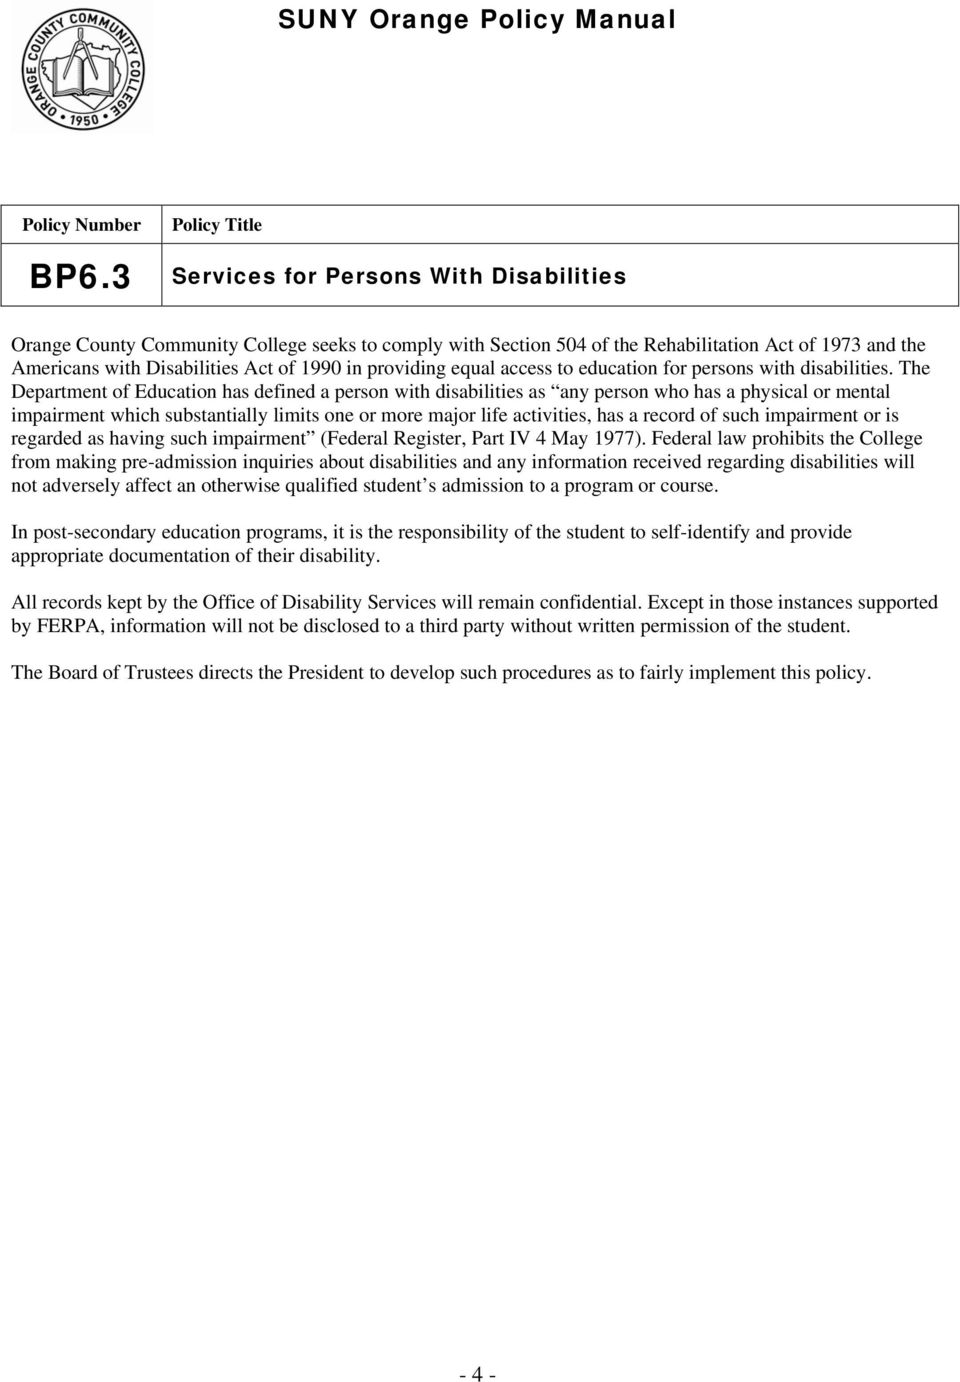 The Department of Education has defined a person with disabilities as any person who has a physical or mental impairment which substantially limits one or more major life activities, has a record of